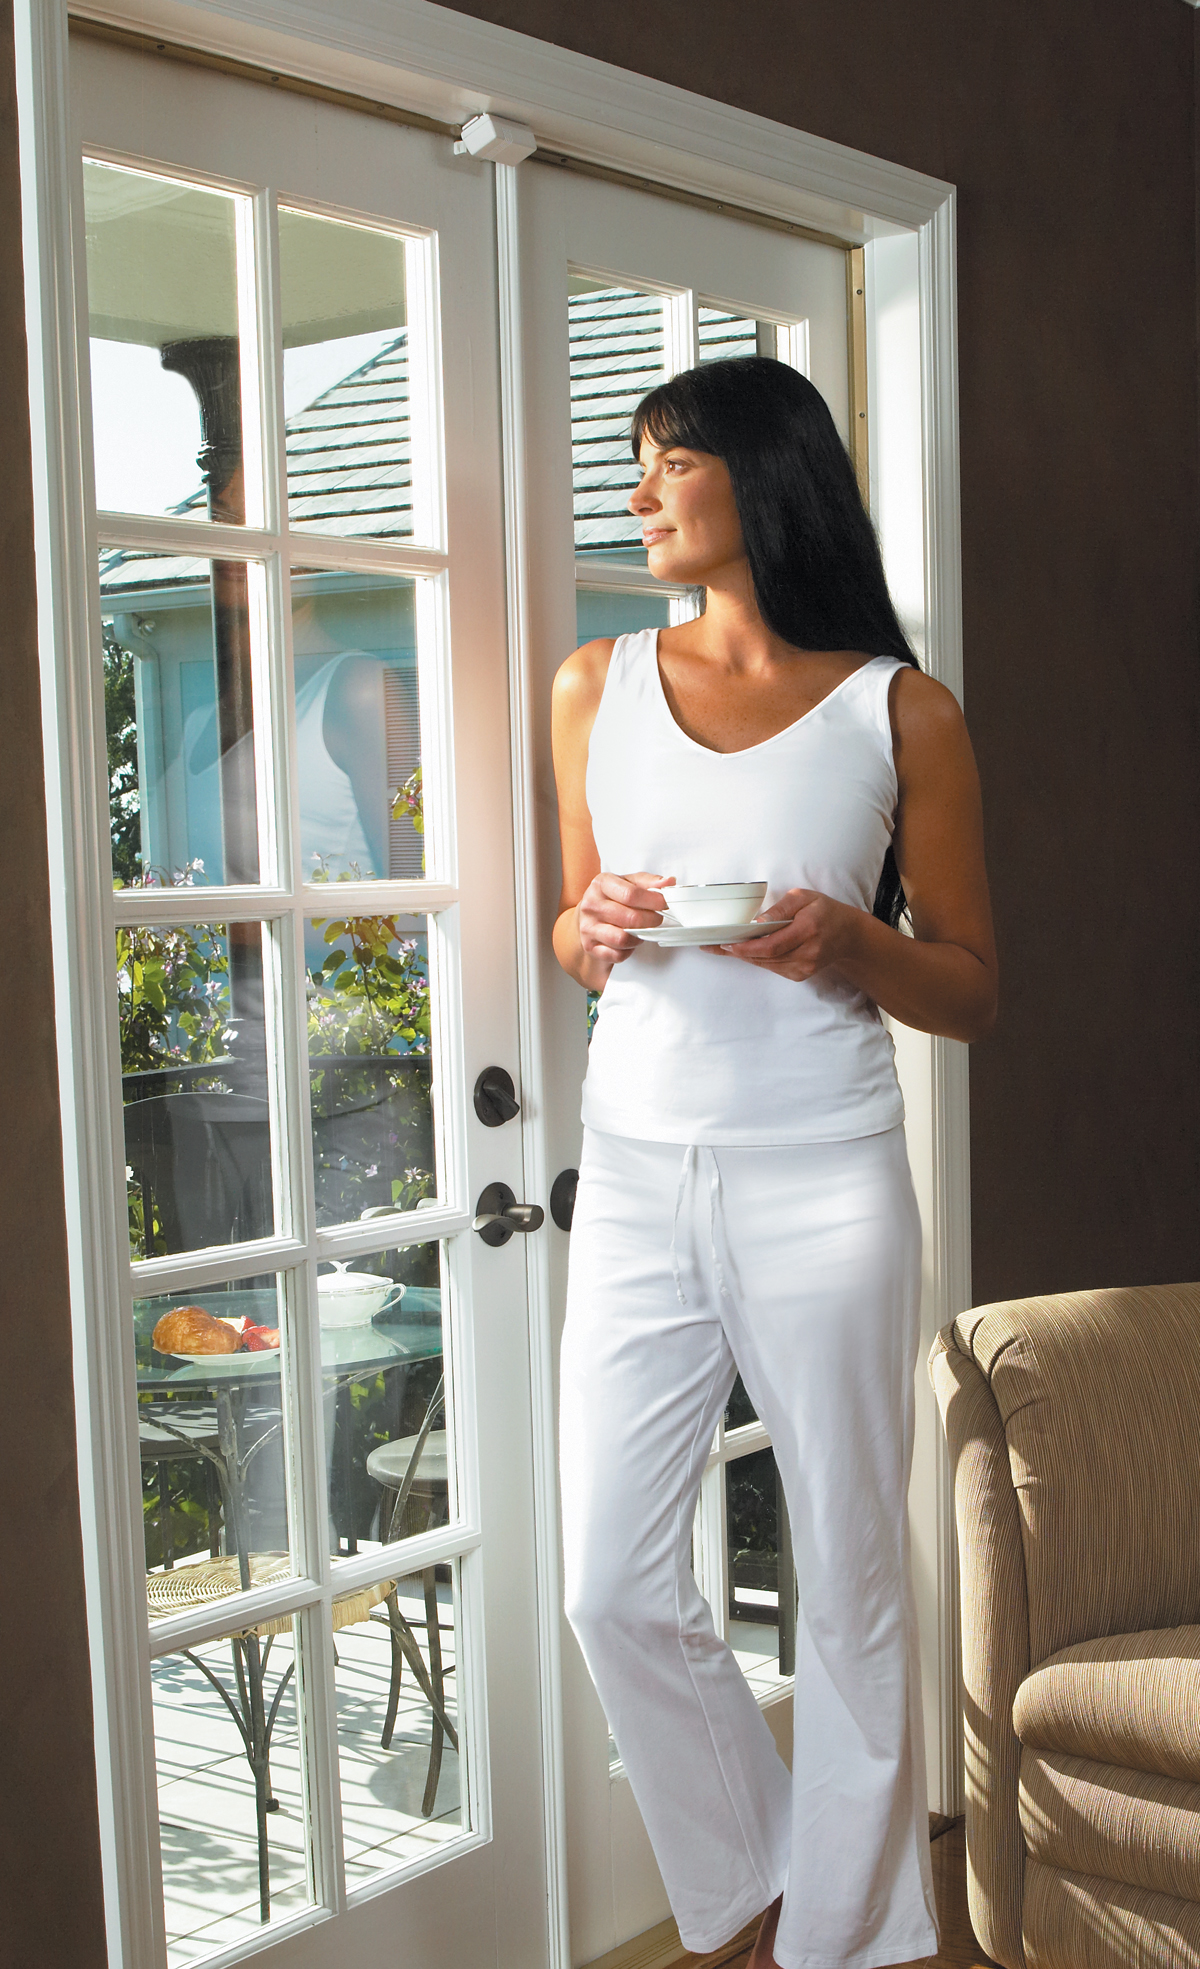 protect people and interiors from heat and ultraviolet damage with solar control window films by Apex Toronto